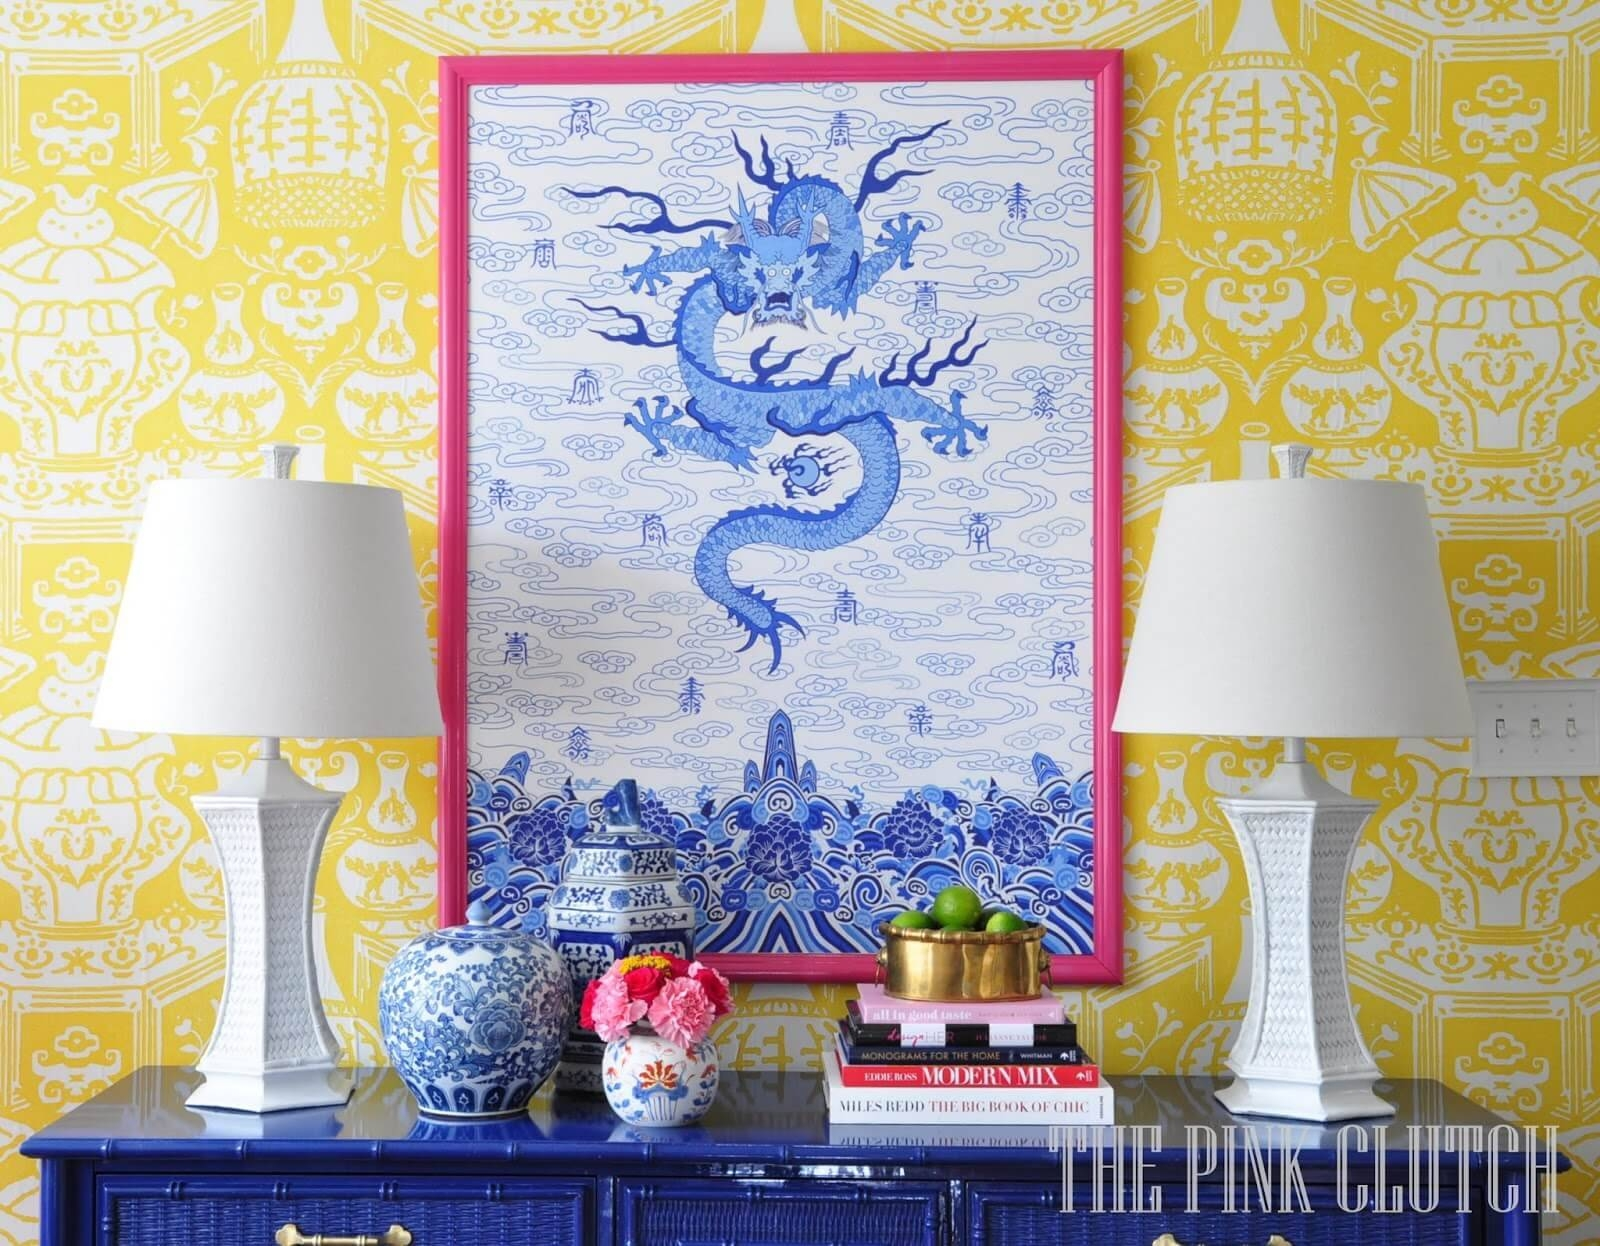 Chinoiserie Decorating Tips | Decoratorsbest Blog Intended For 2017 Chinoiserie Wall Art (View 11 of 30)